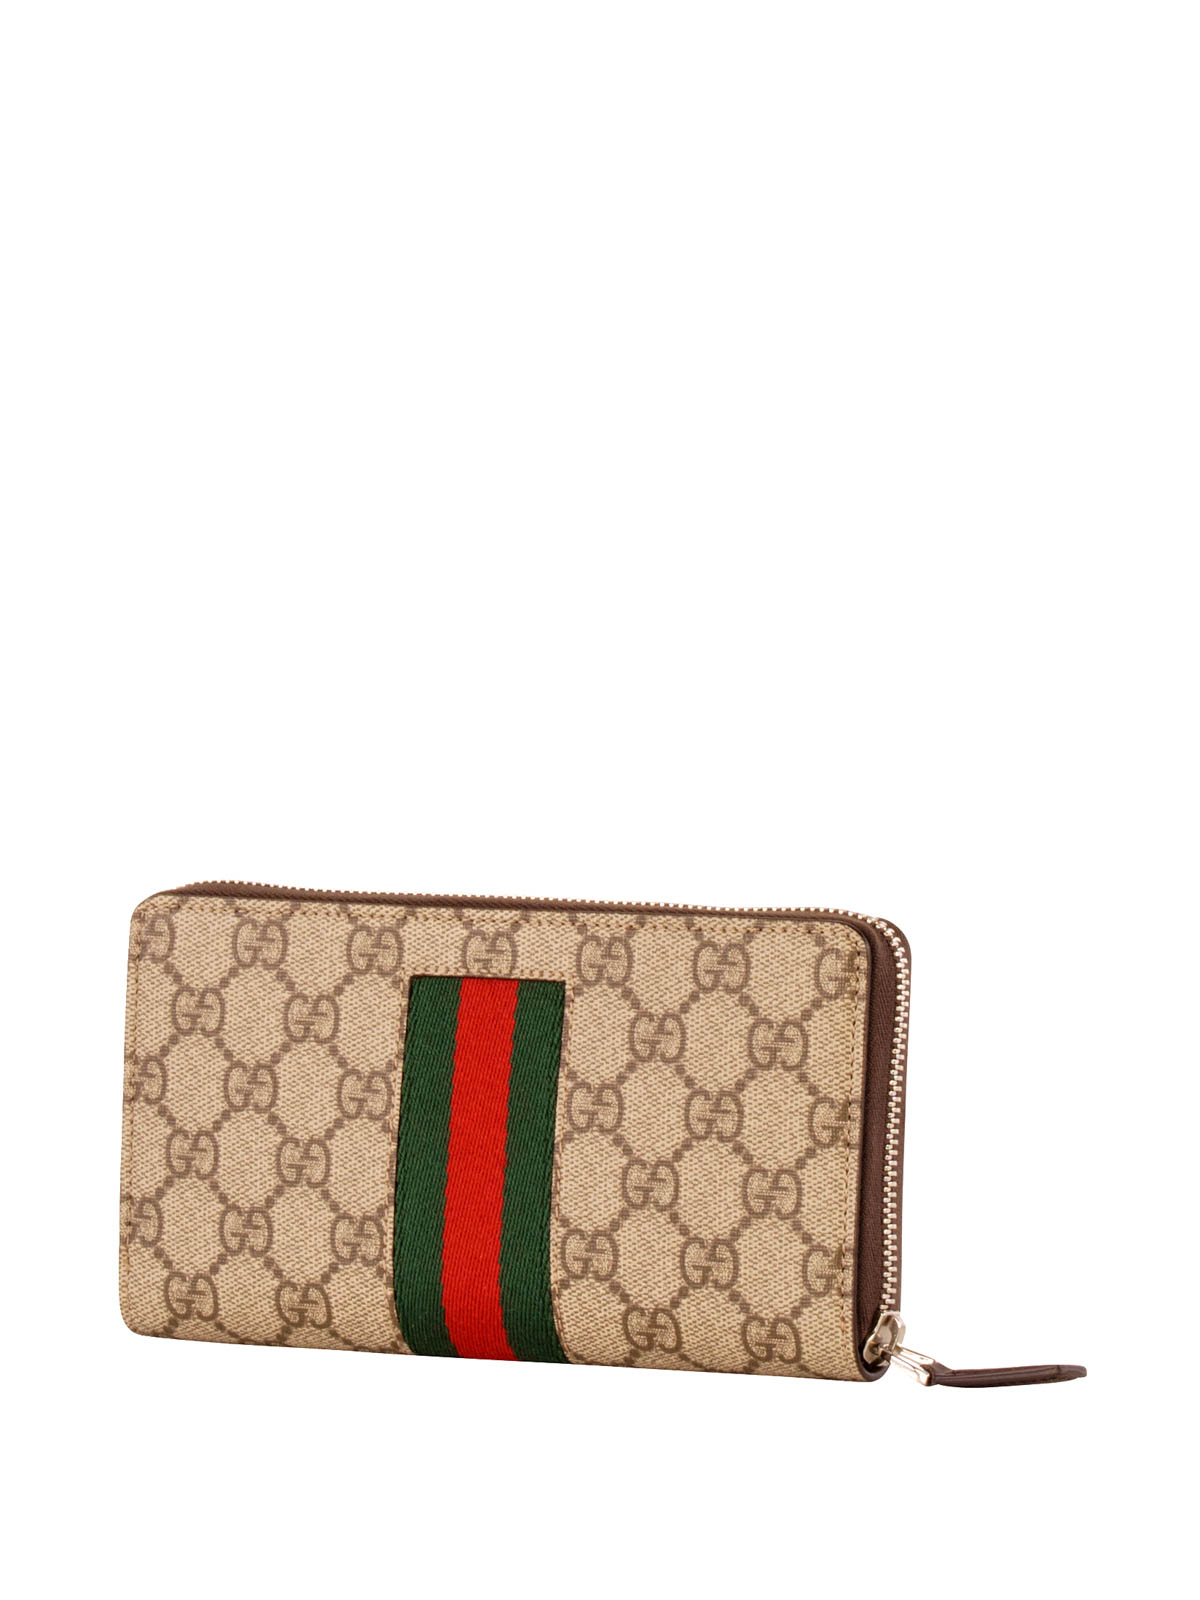 c00abf596e3b8 Gucci - GG Supreme zip around wallet - wallets   purses - 408831 ...